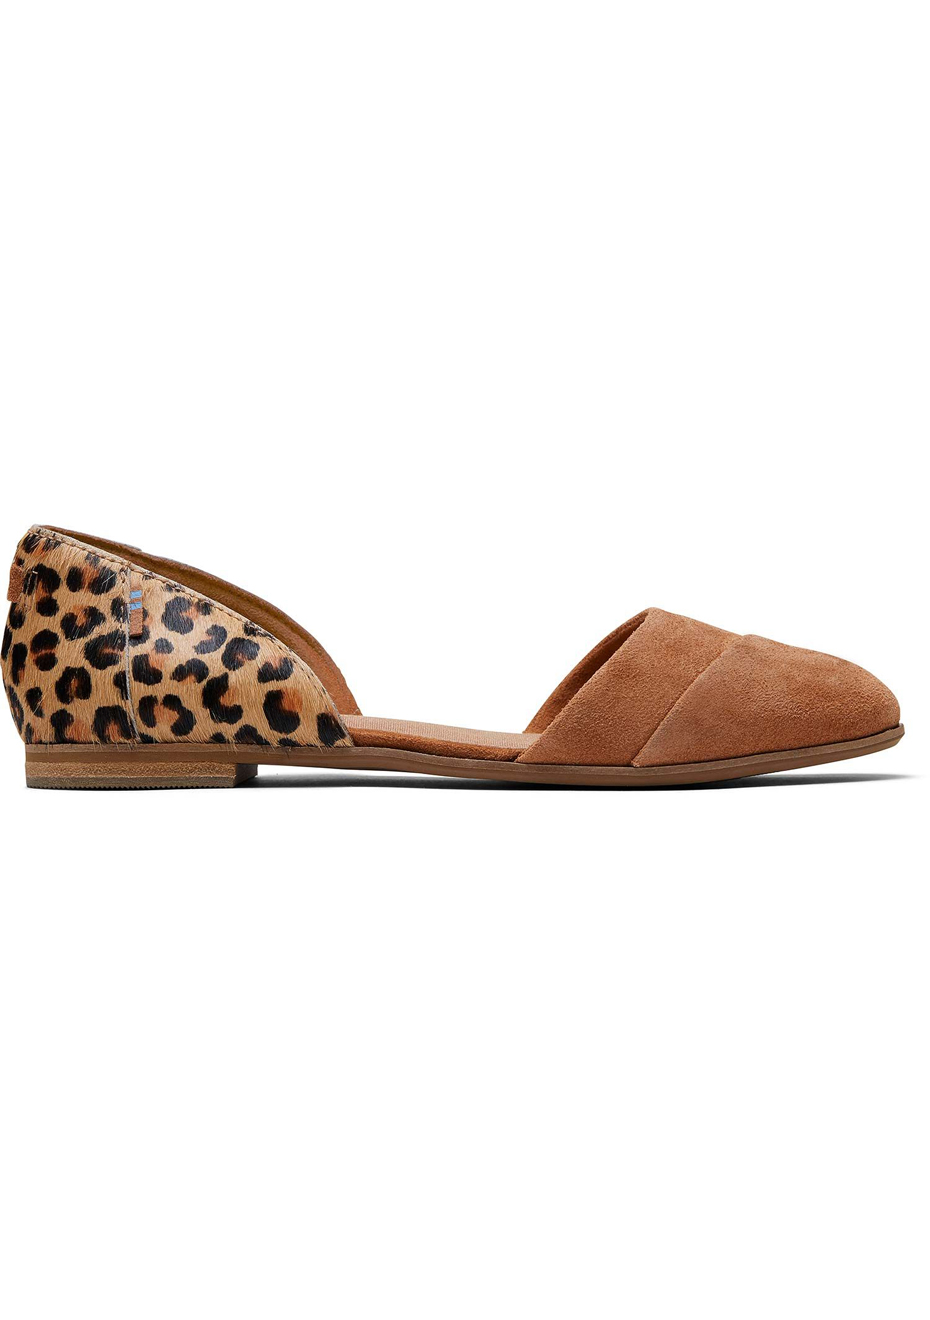 Toms Shoes - Womens Jutti D'Orsay